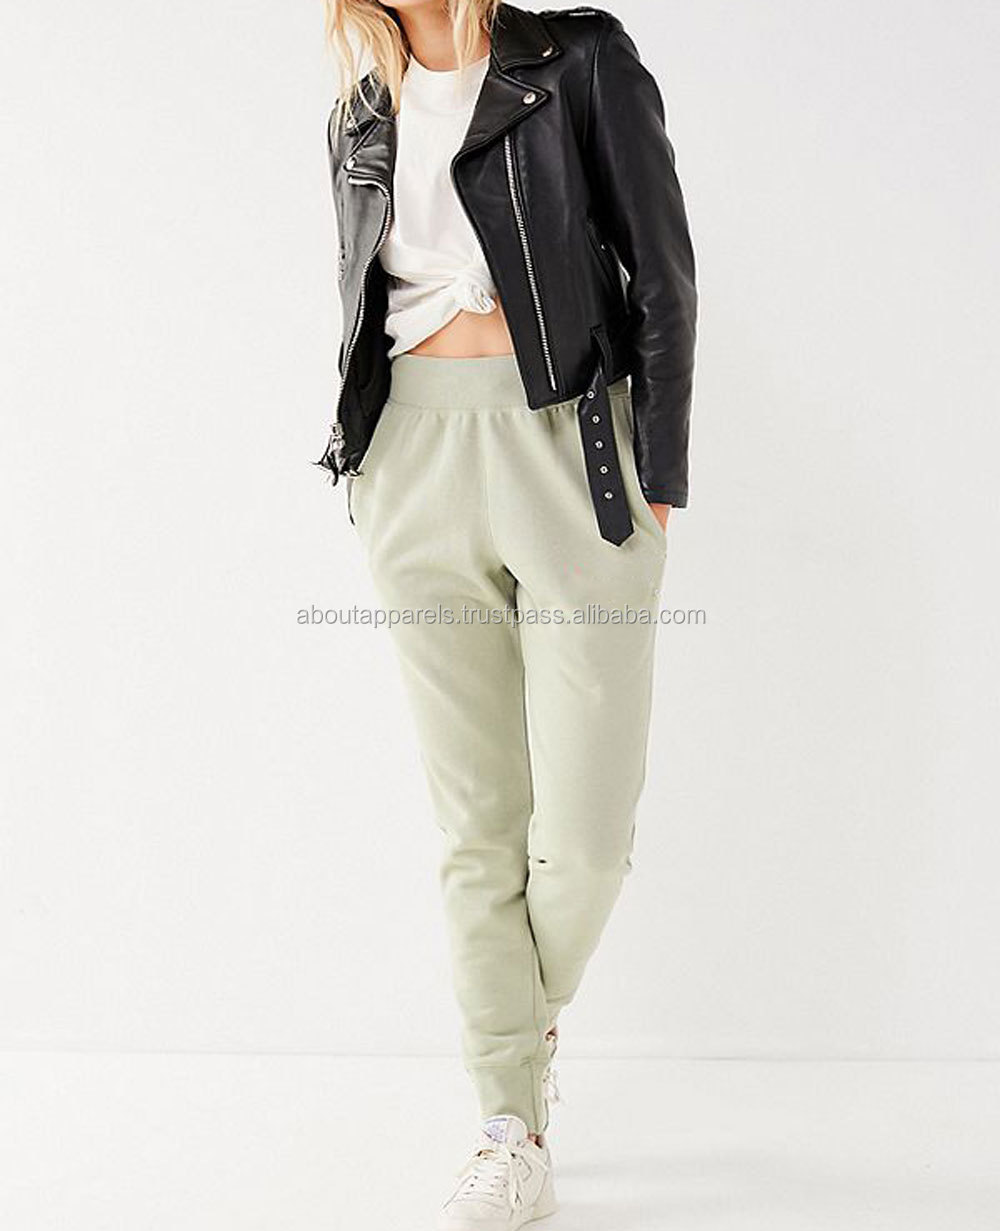 OEM Service Supply Type Jogger Women Wholesales 100% Cotton Sweatpants